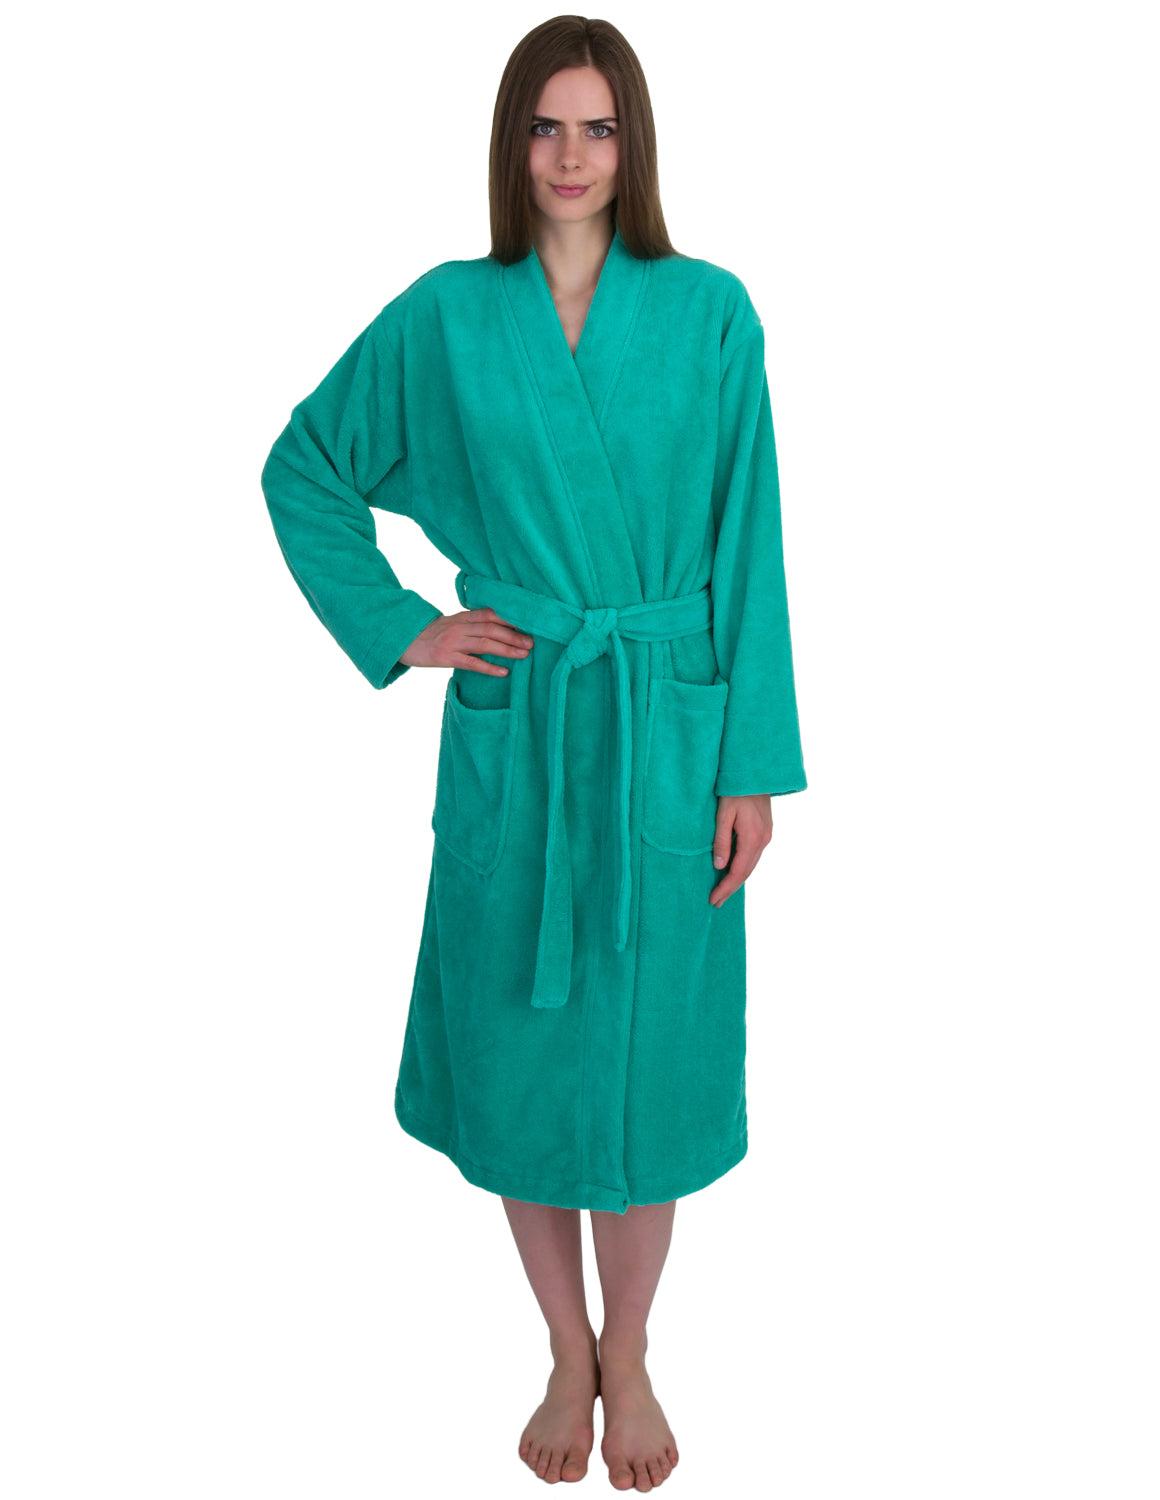 Towelselections Women S Robe Fleece Cotton Terry Lined